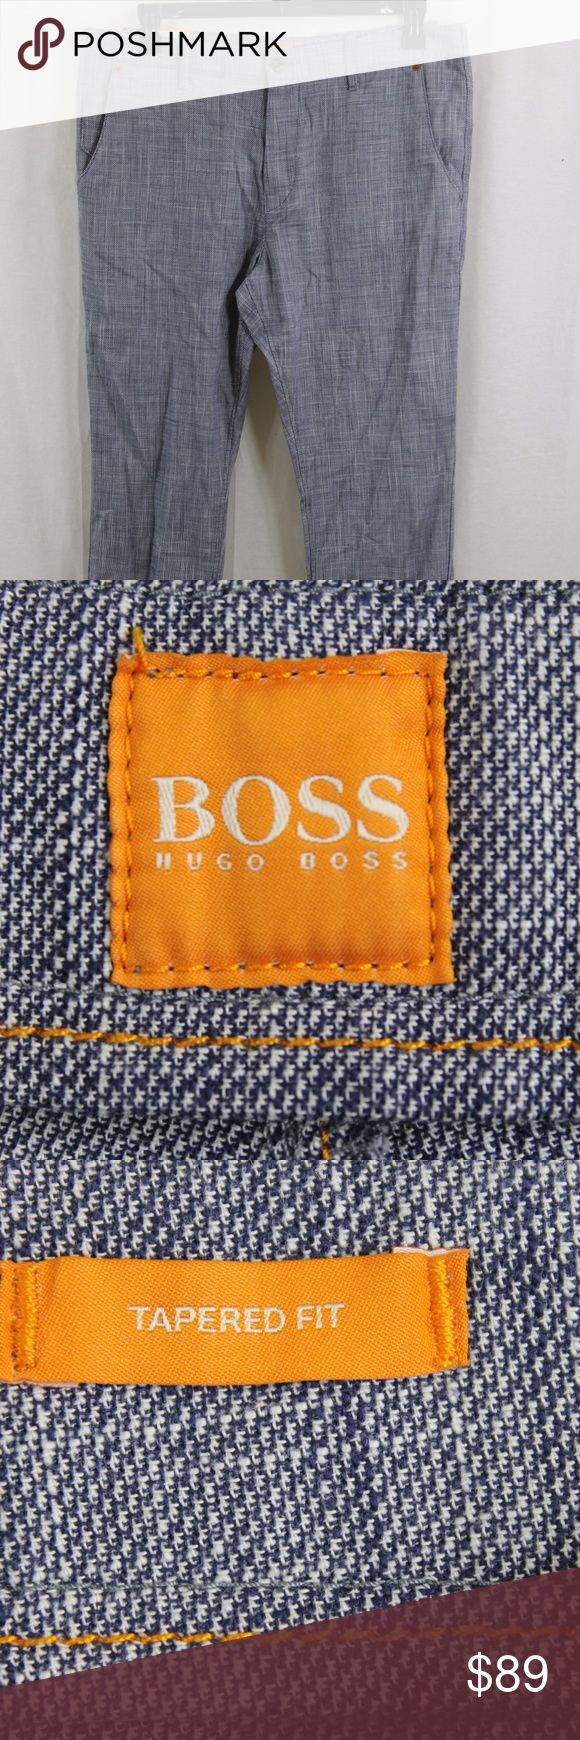 HUGO BOSS ORANGE SANDREW TAPERED FIT TROUSER PANTS SIZE:  34R  WAIST:   34  INSEAM:    32  LENGTH:     43  STYLE:    TAPERED FIT/SLIM LEG  MATERIAL:    COTTON  CONDITION:        BRAND NEW WITH TAGS. SOURCED DIRECTLY FROM A NATIONAL UPSCALE U.S. RETAILER. QUALITY AND AUTHENTICITY GUARANTEED!                    15-52-M31 Hugo Boss Pants